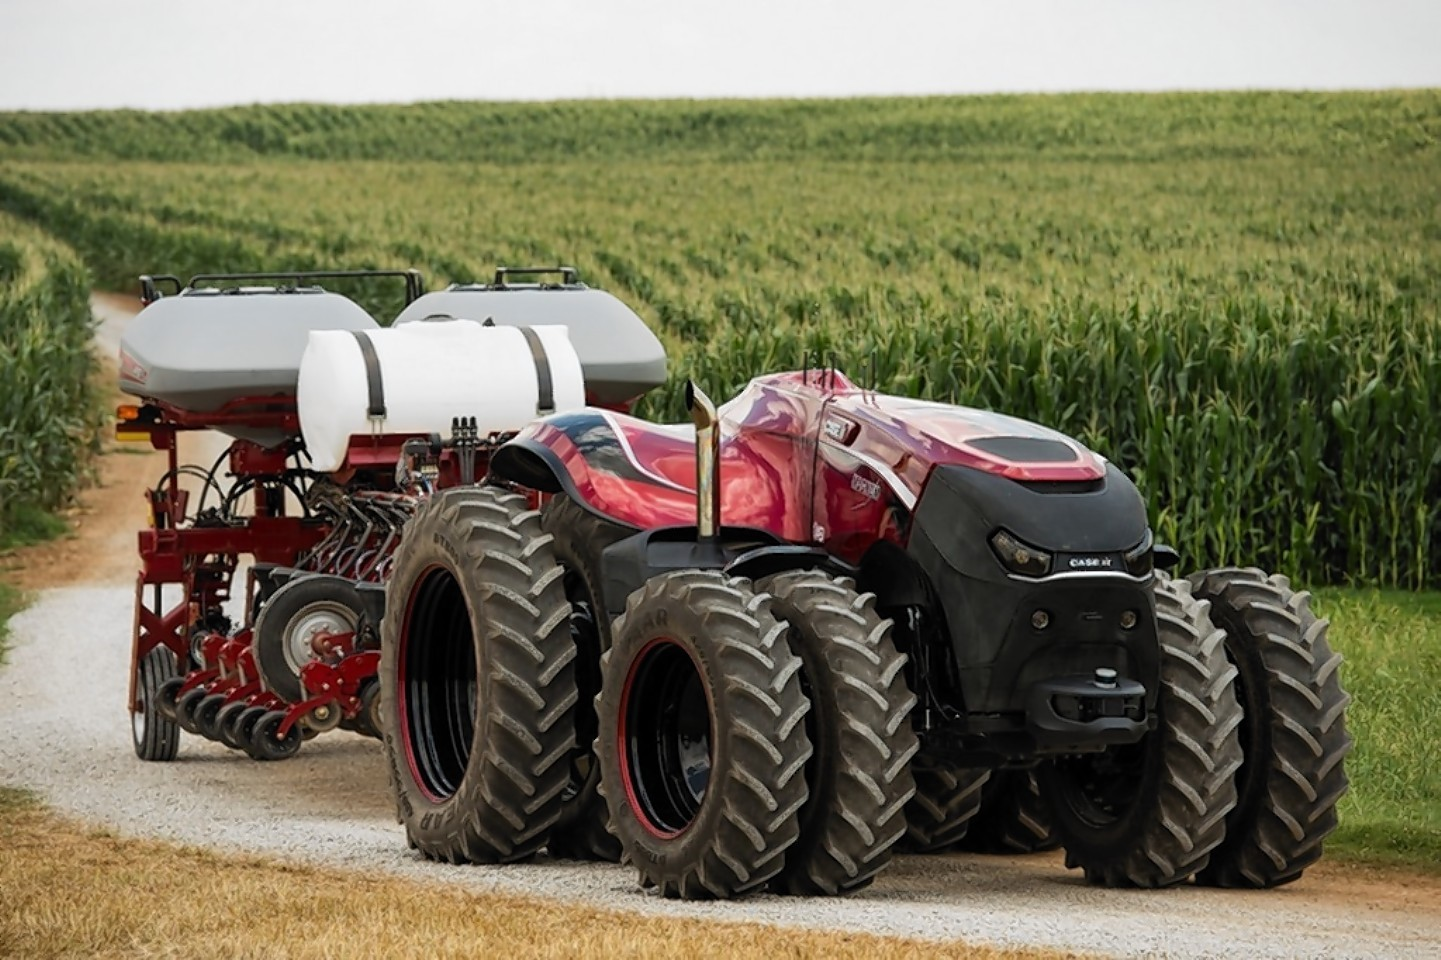 The cabless concept Case IH Magnum.